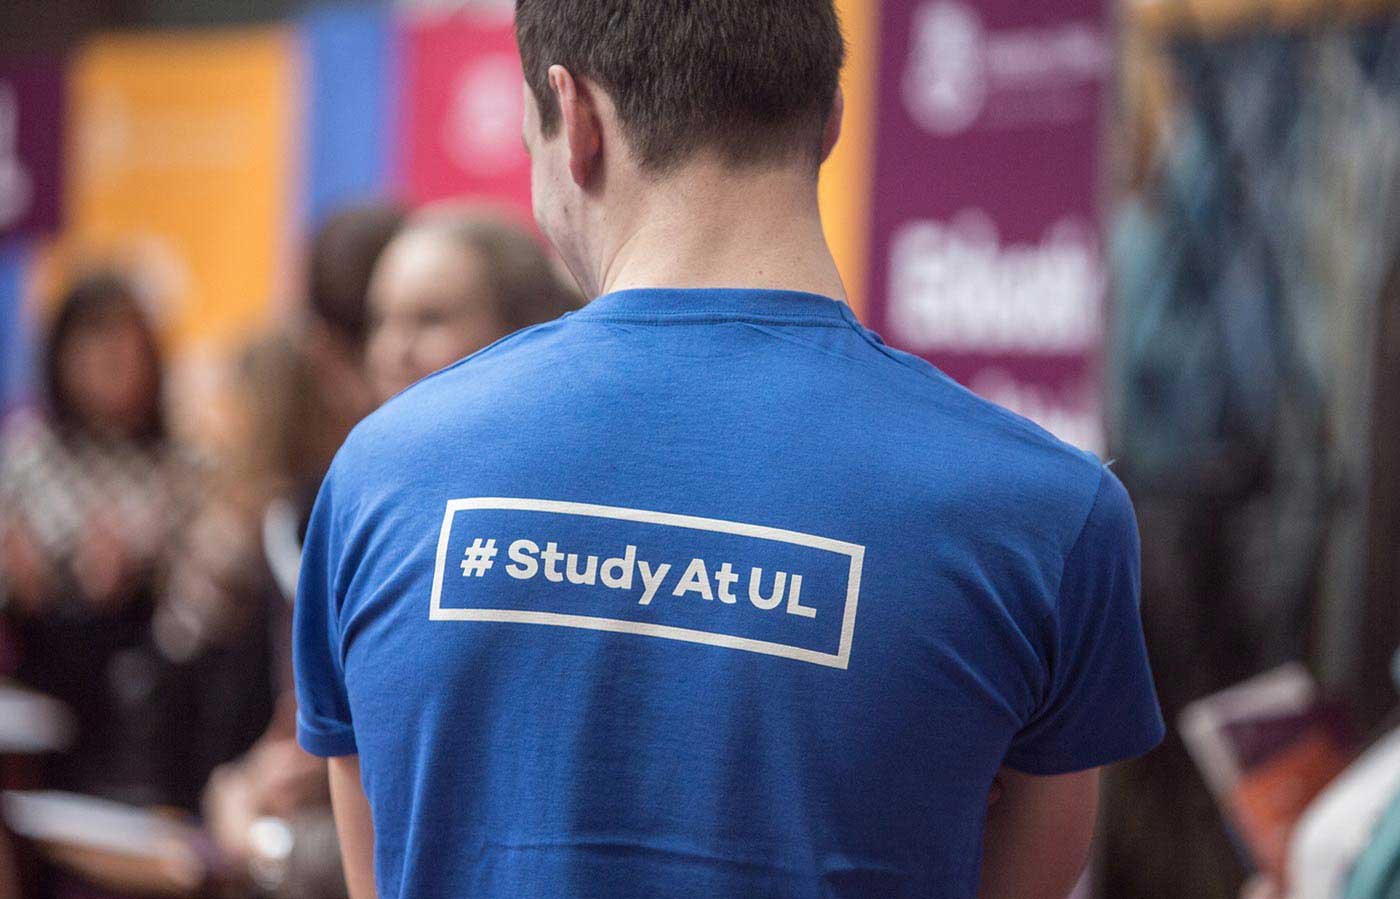 UL Undergrad Brand identity worn by a student volunteer at the open day #studyatul